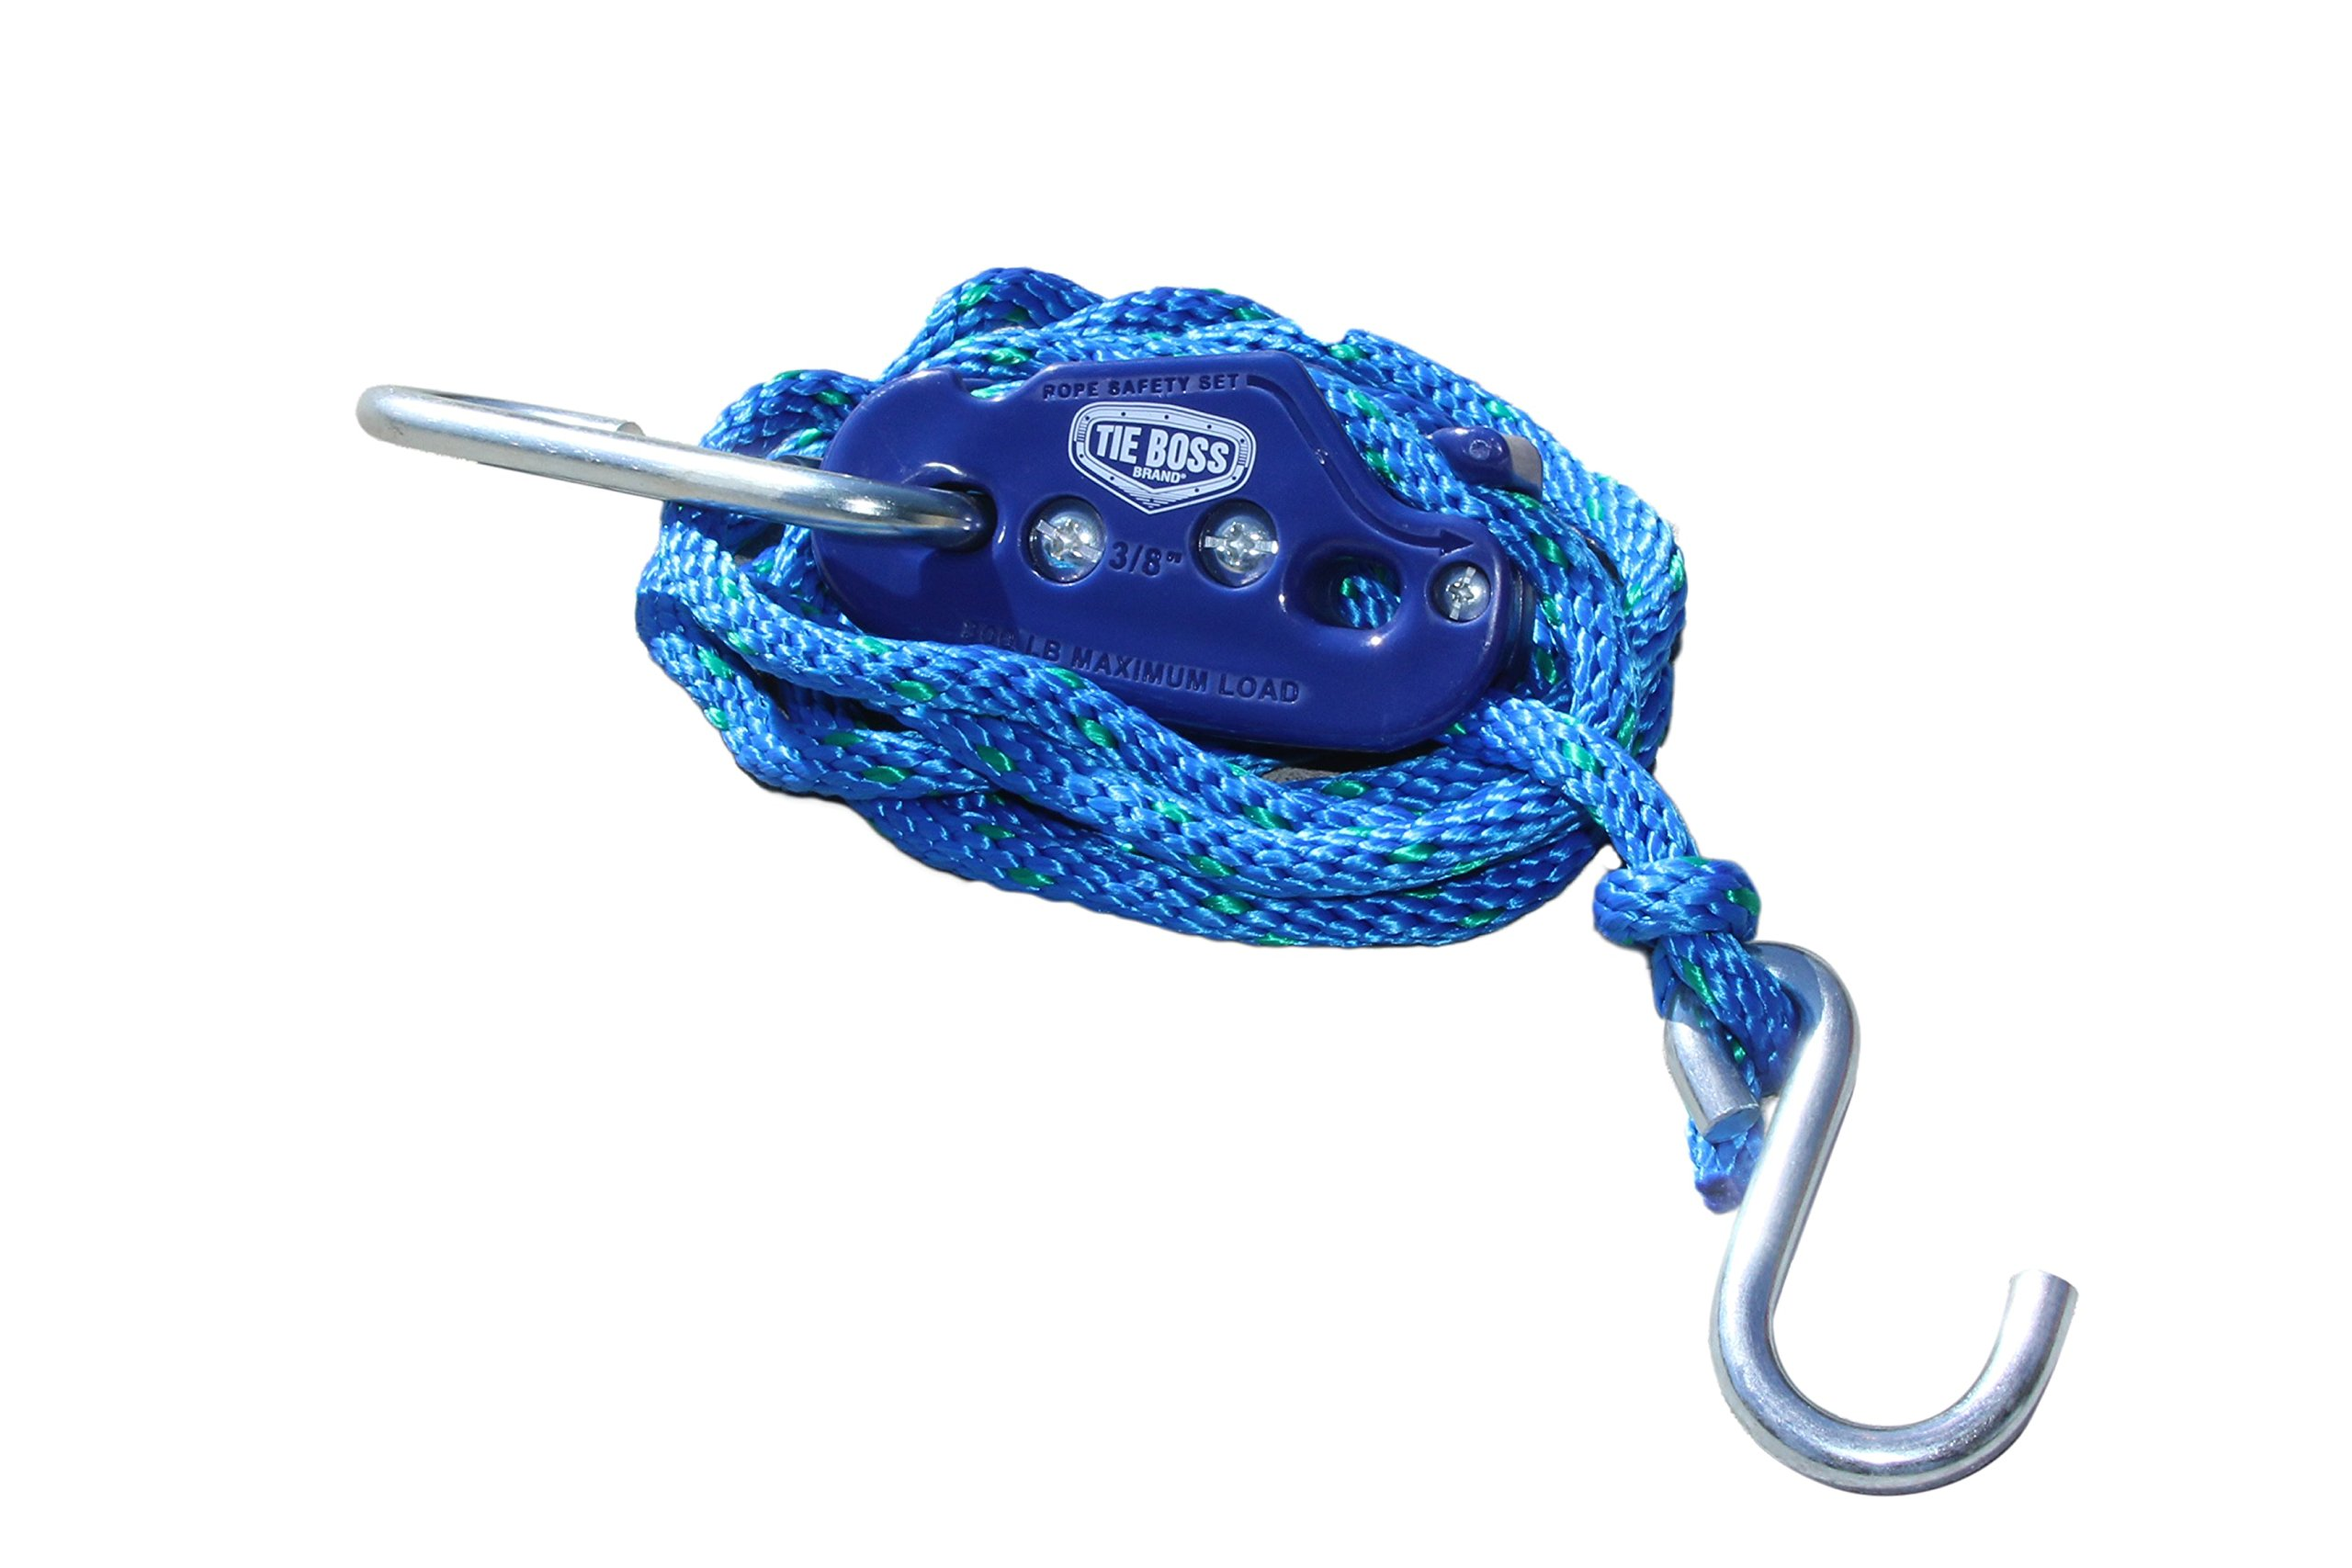 Tie Boss Pulley Lighting Accessories with 10-Feet Rope, 3/8-Inch